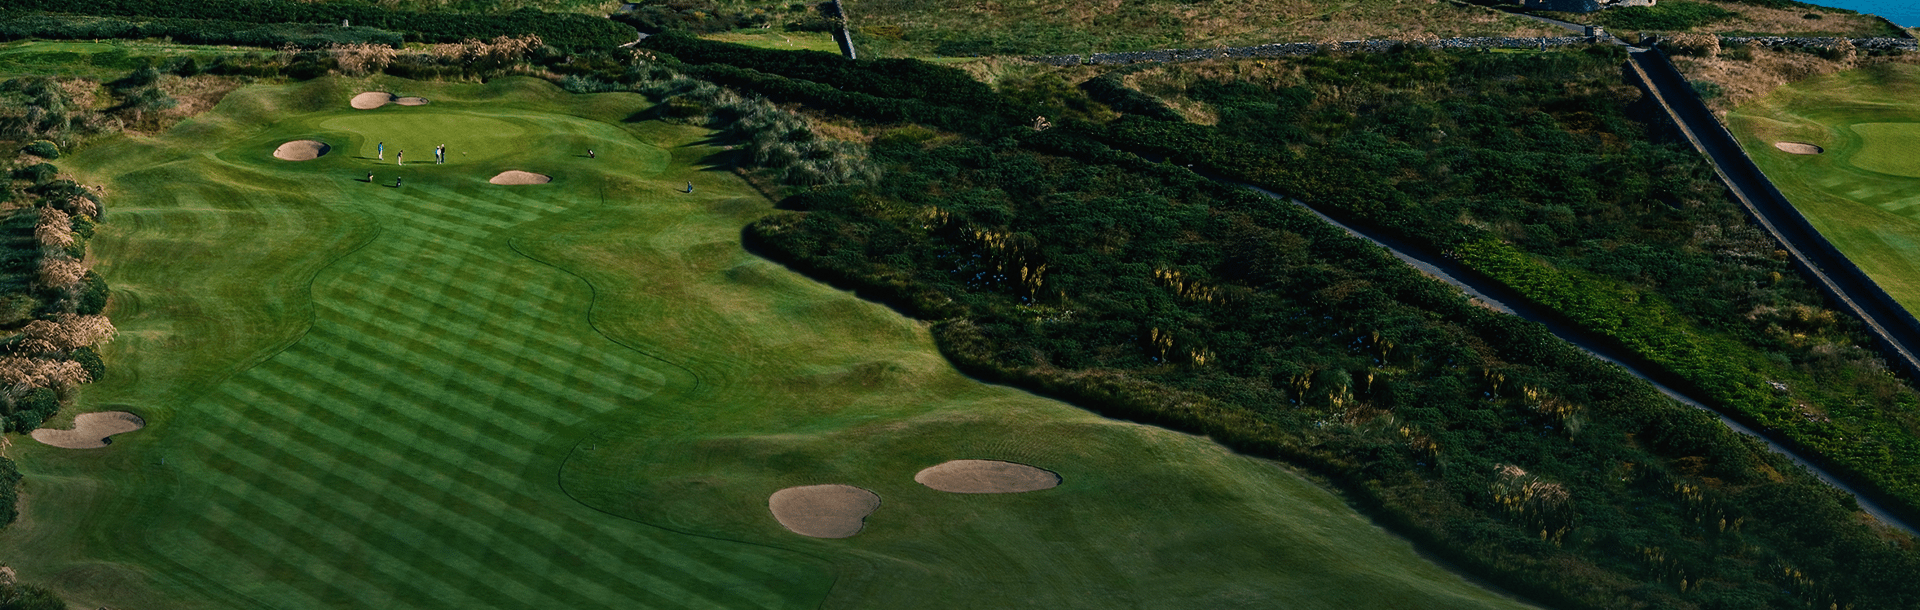 Ireland Golf Tours & Packages